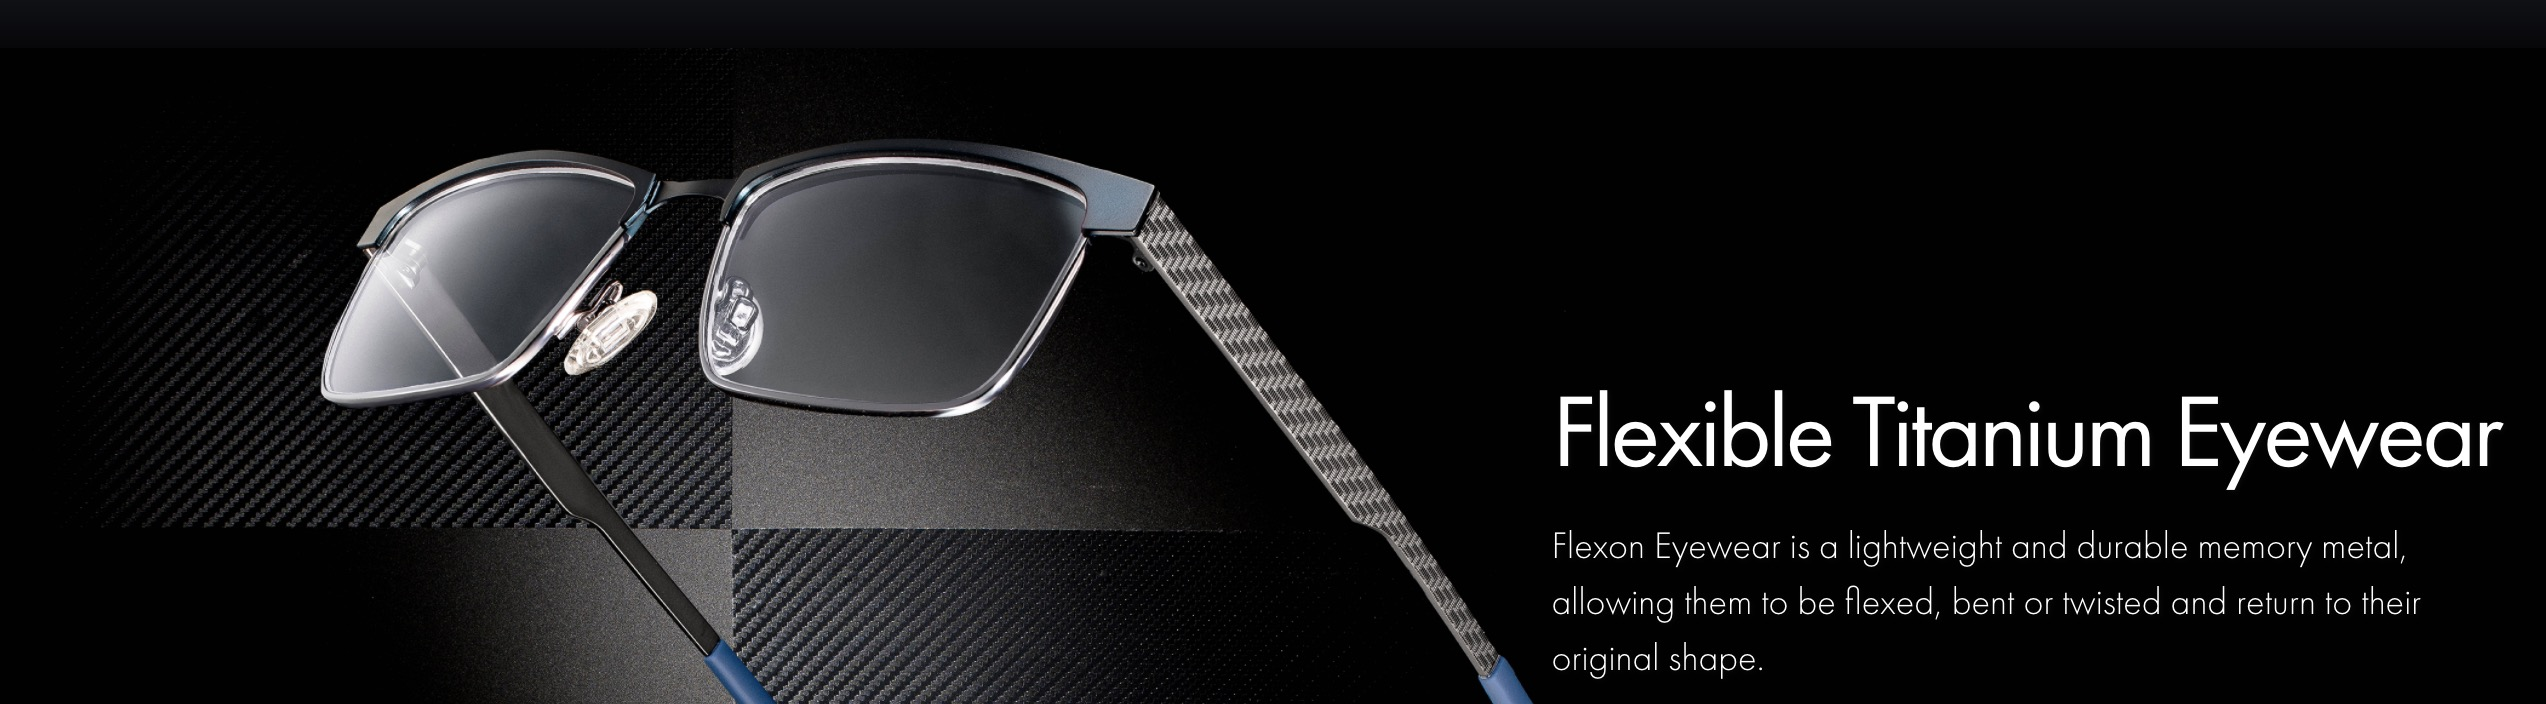 Titanium Glasses by Flexon